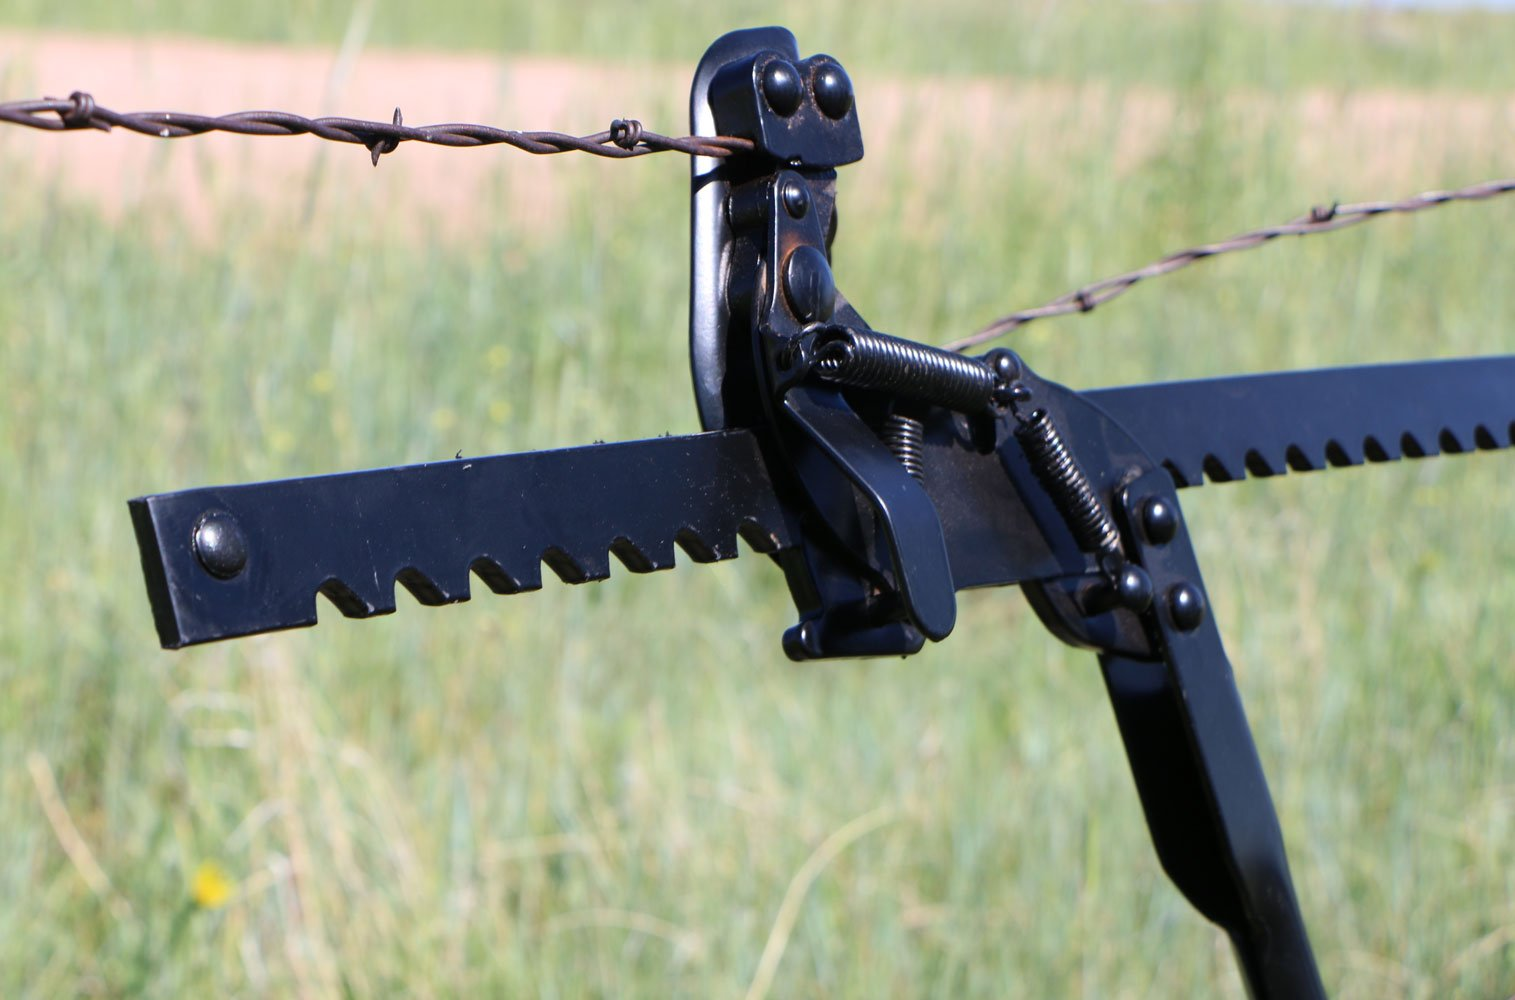 Hardware Farm Tool Ratchet Fences Stretchers Barbed Wire